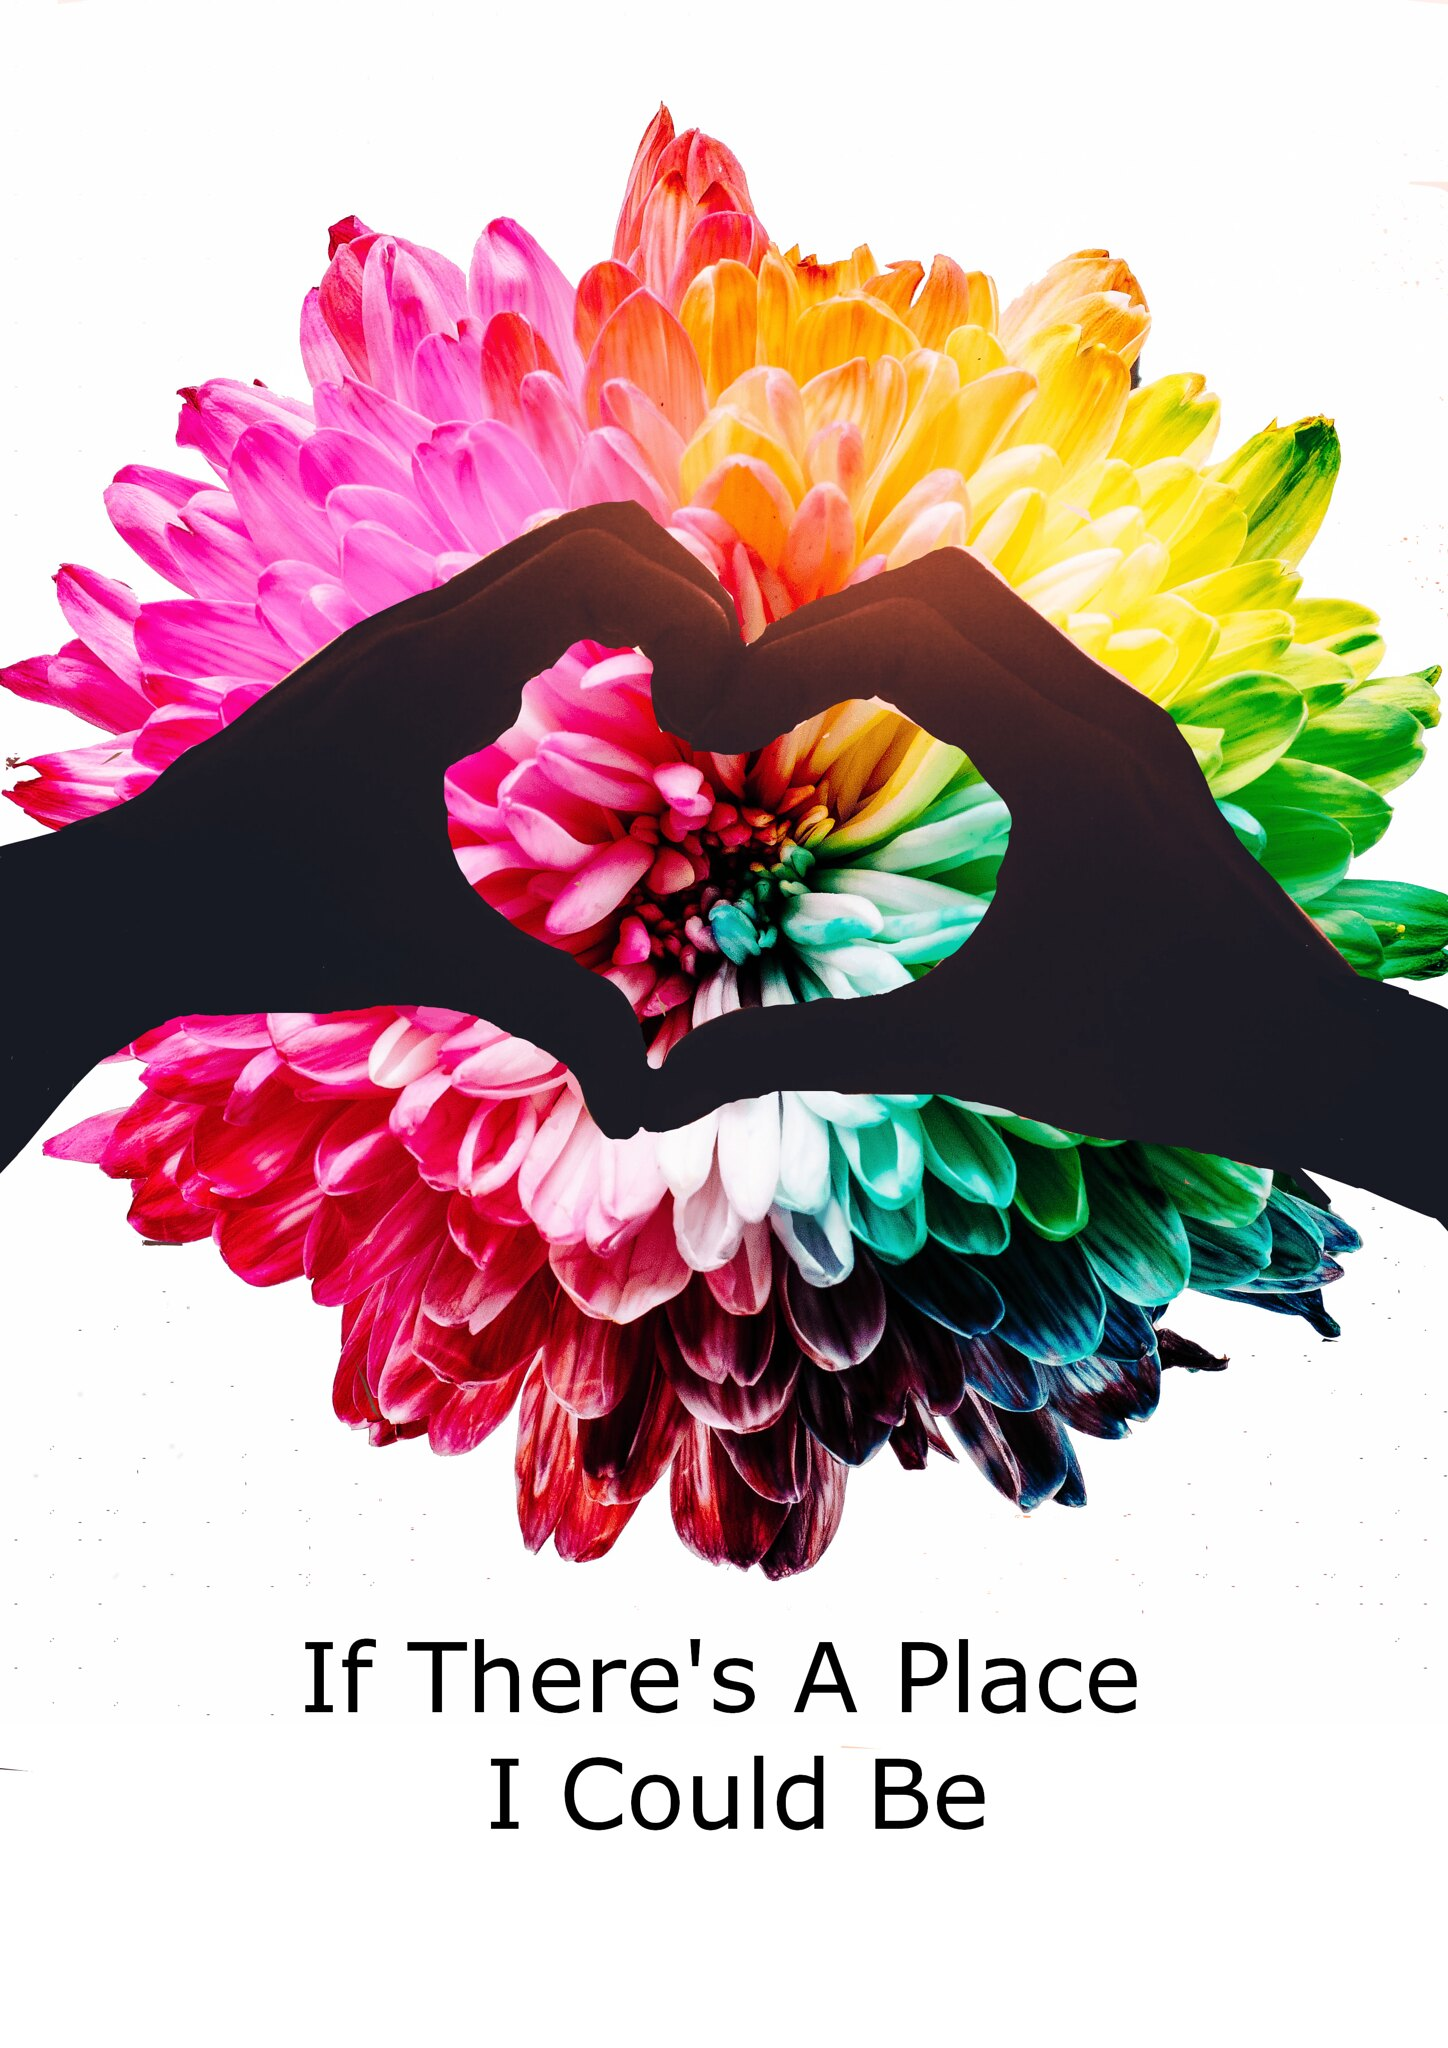 Two hands form a heart over a rainbow flower. If There's A Place I Could Be is written in black text in the bottom center